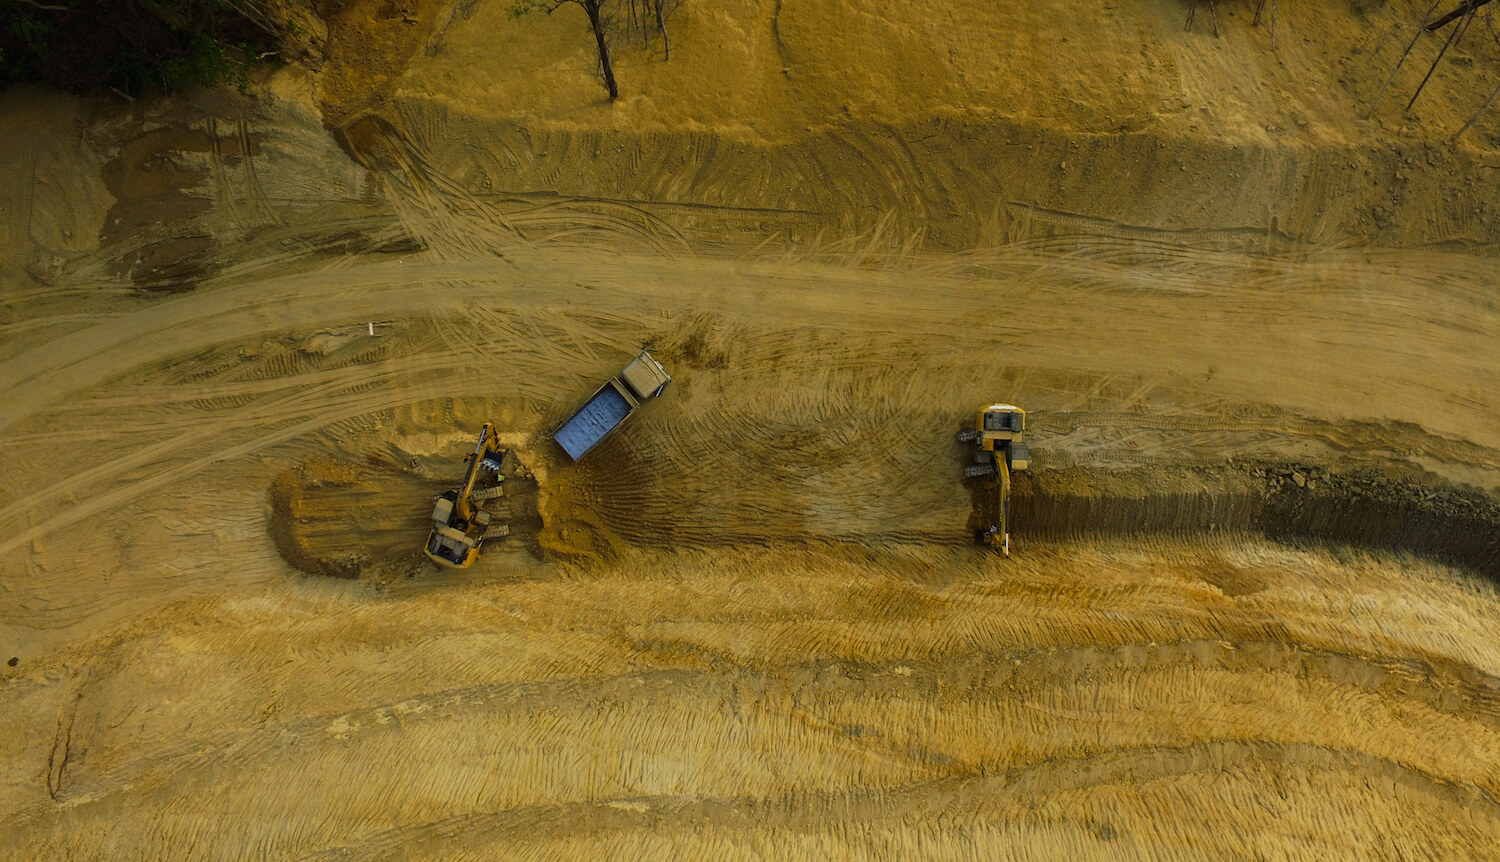 Aerial view, 2 trucks in the middle of barren, gold landscape.